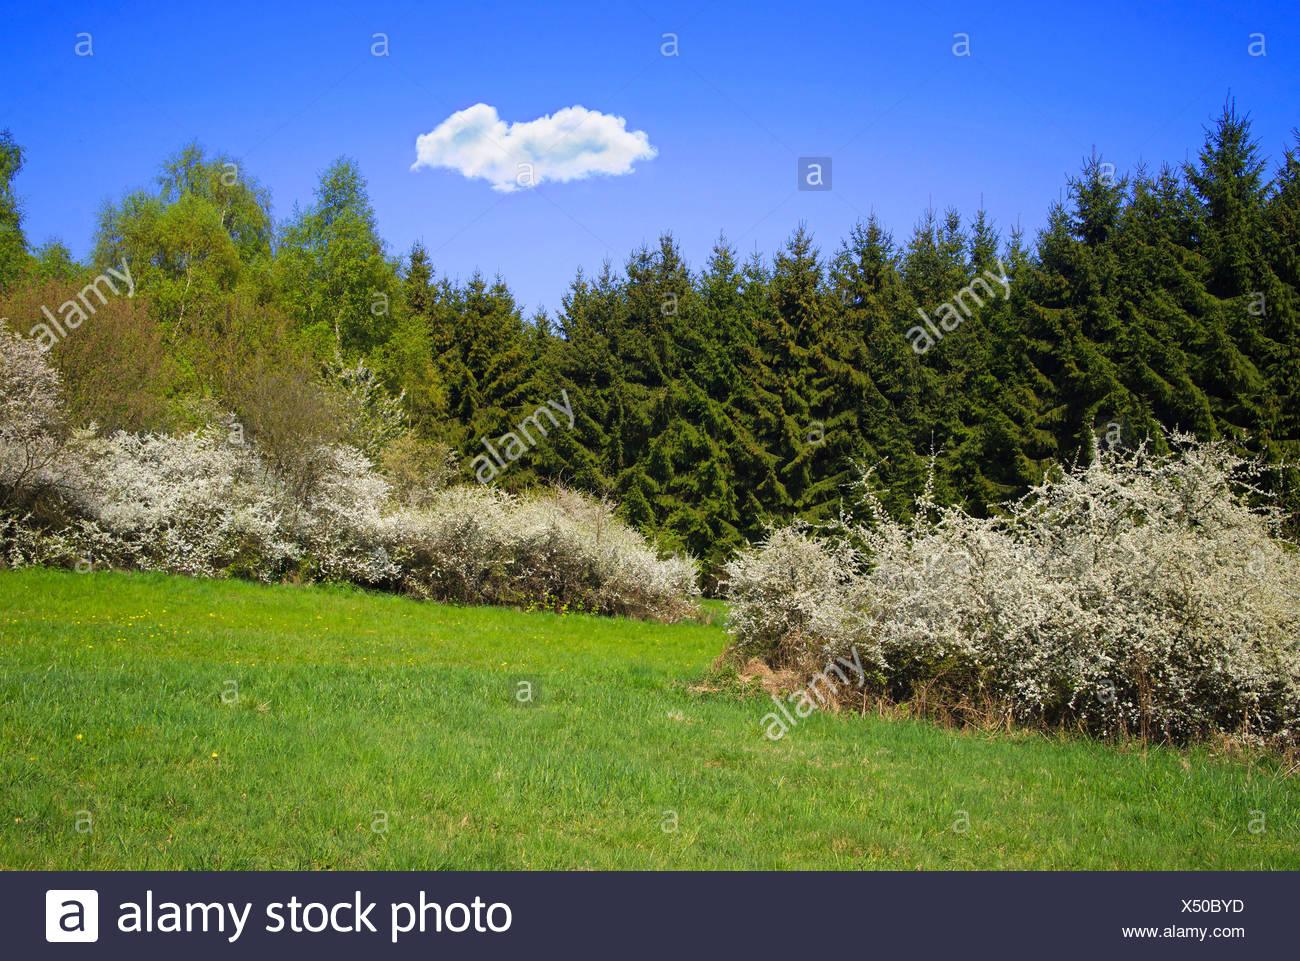 blackthorn, sloe (Prunus spinosa), spring landscape with blooming blackthorns, Germany, Rhineland-Palatinate, Eifel - Stock Image